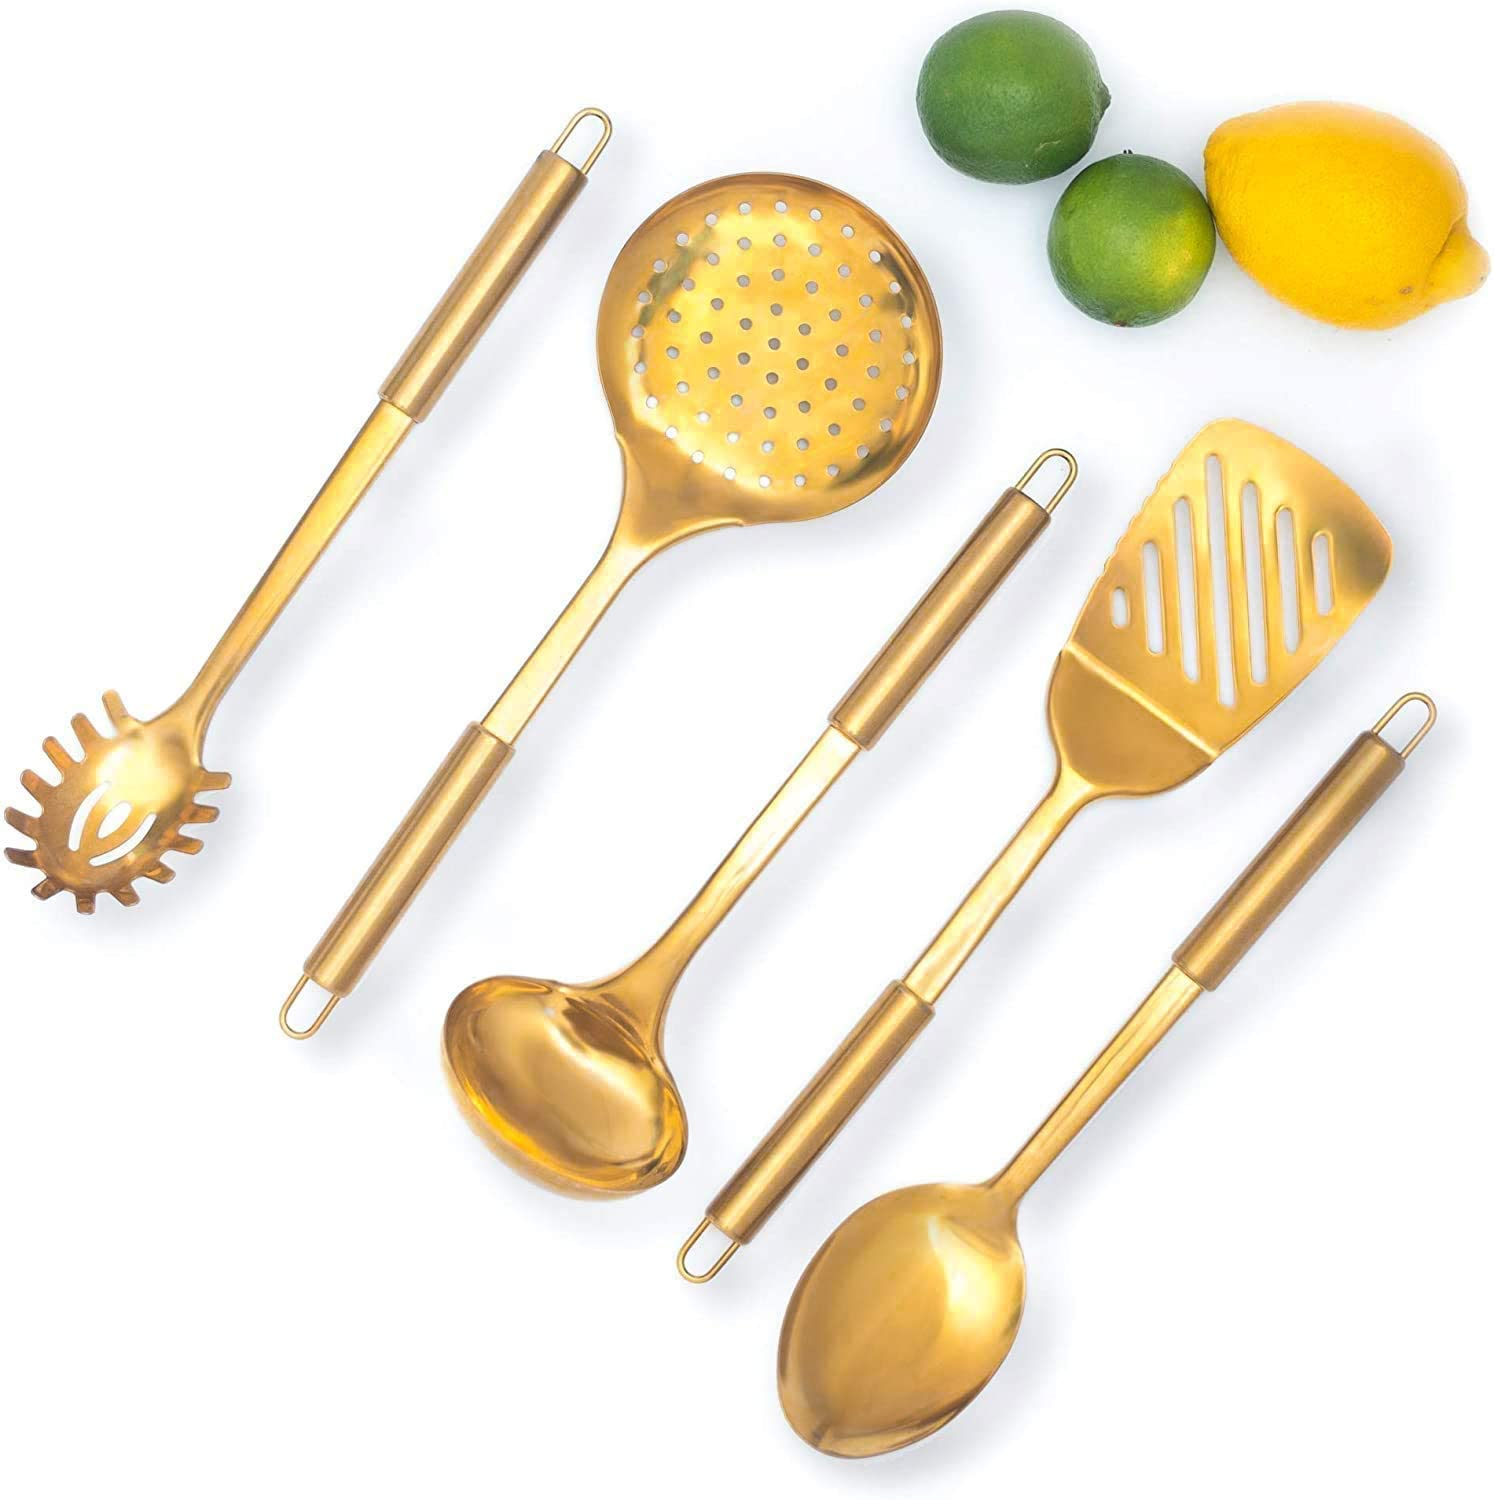 Max 75% OFF Brass Gold Cooking Utensils Serving for and Modern High quality